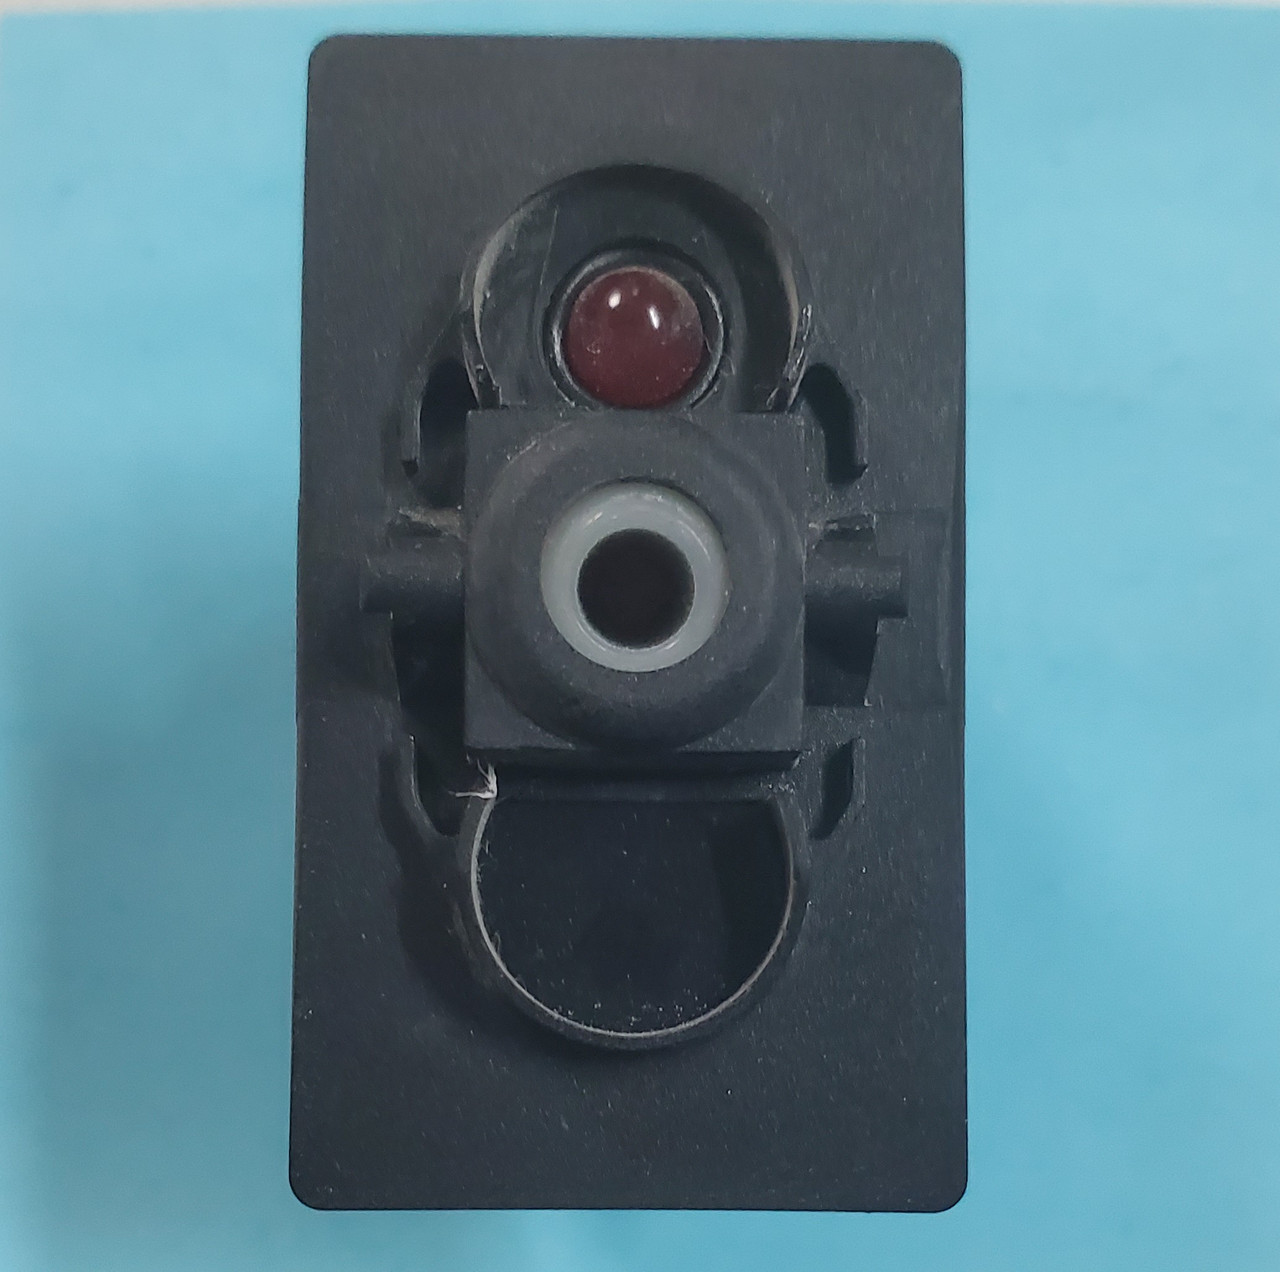 Carling Underwater Light Switch (On/Off, 4-pin)